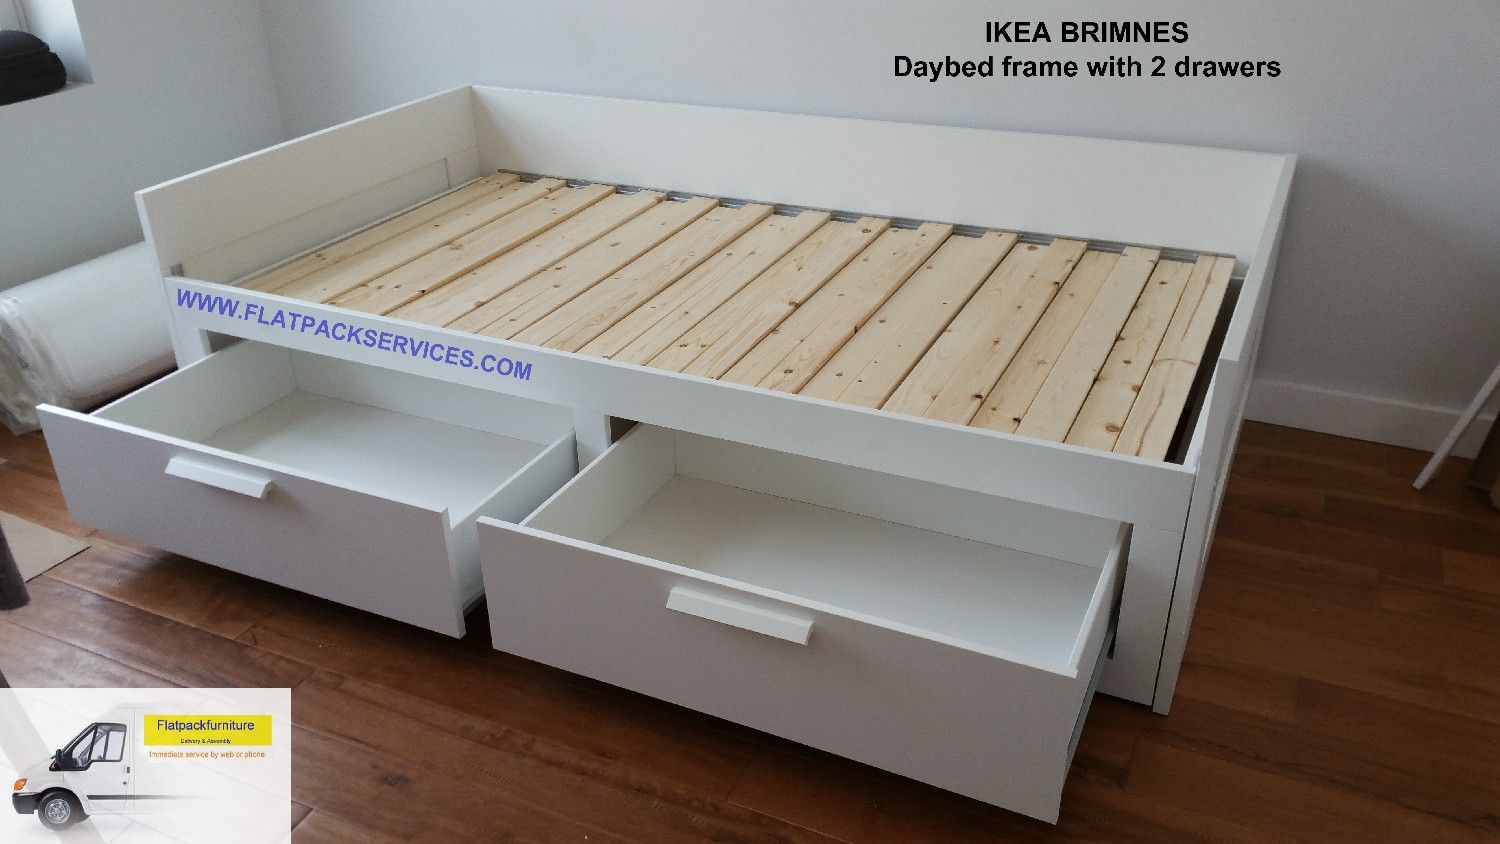 IKEA BRIMNES Daybed frame with 2 drawers, Article Number